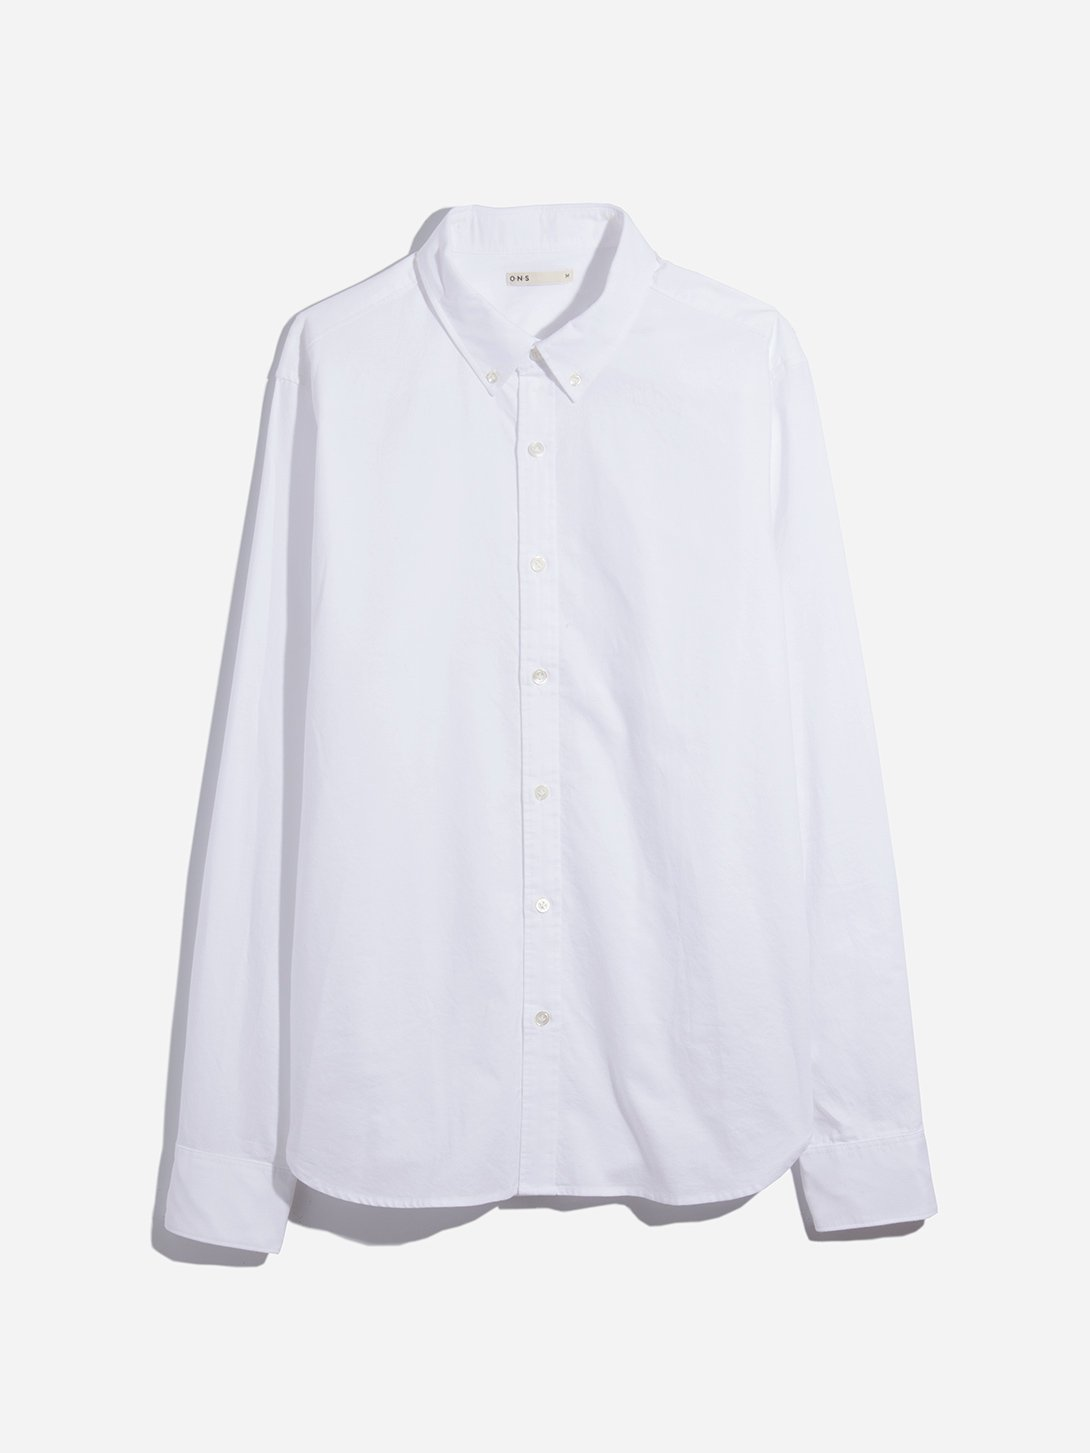 White button down shirt for men fulton heather oxford shirt ons clothing